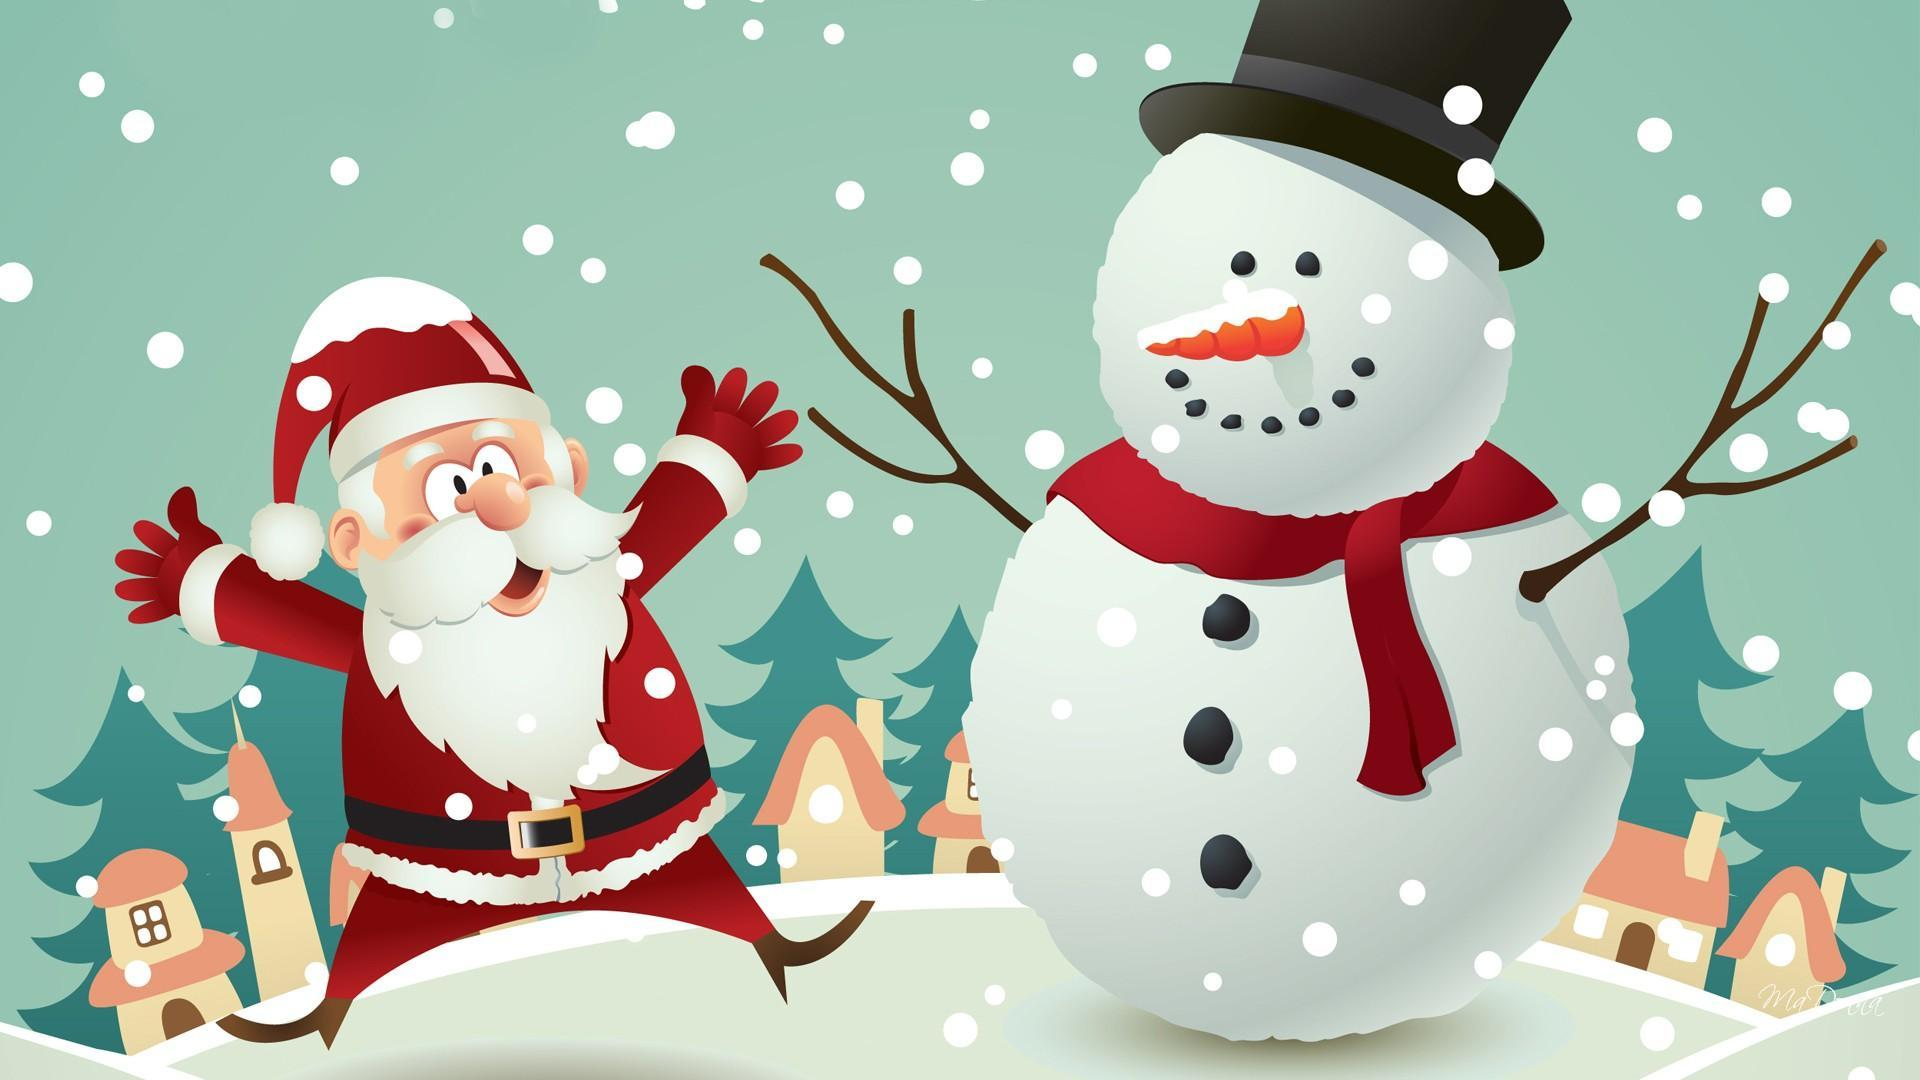 HD Christmas For Frosty Son Wallpapers